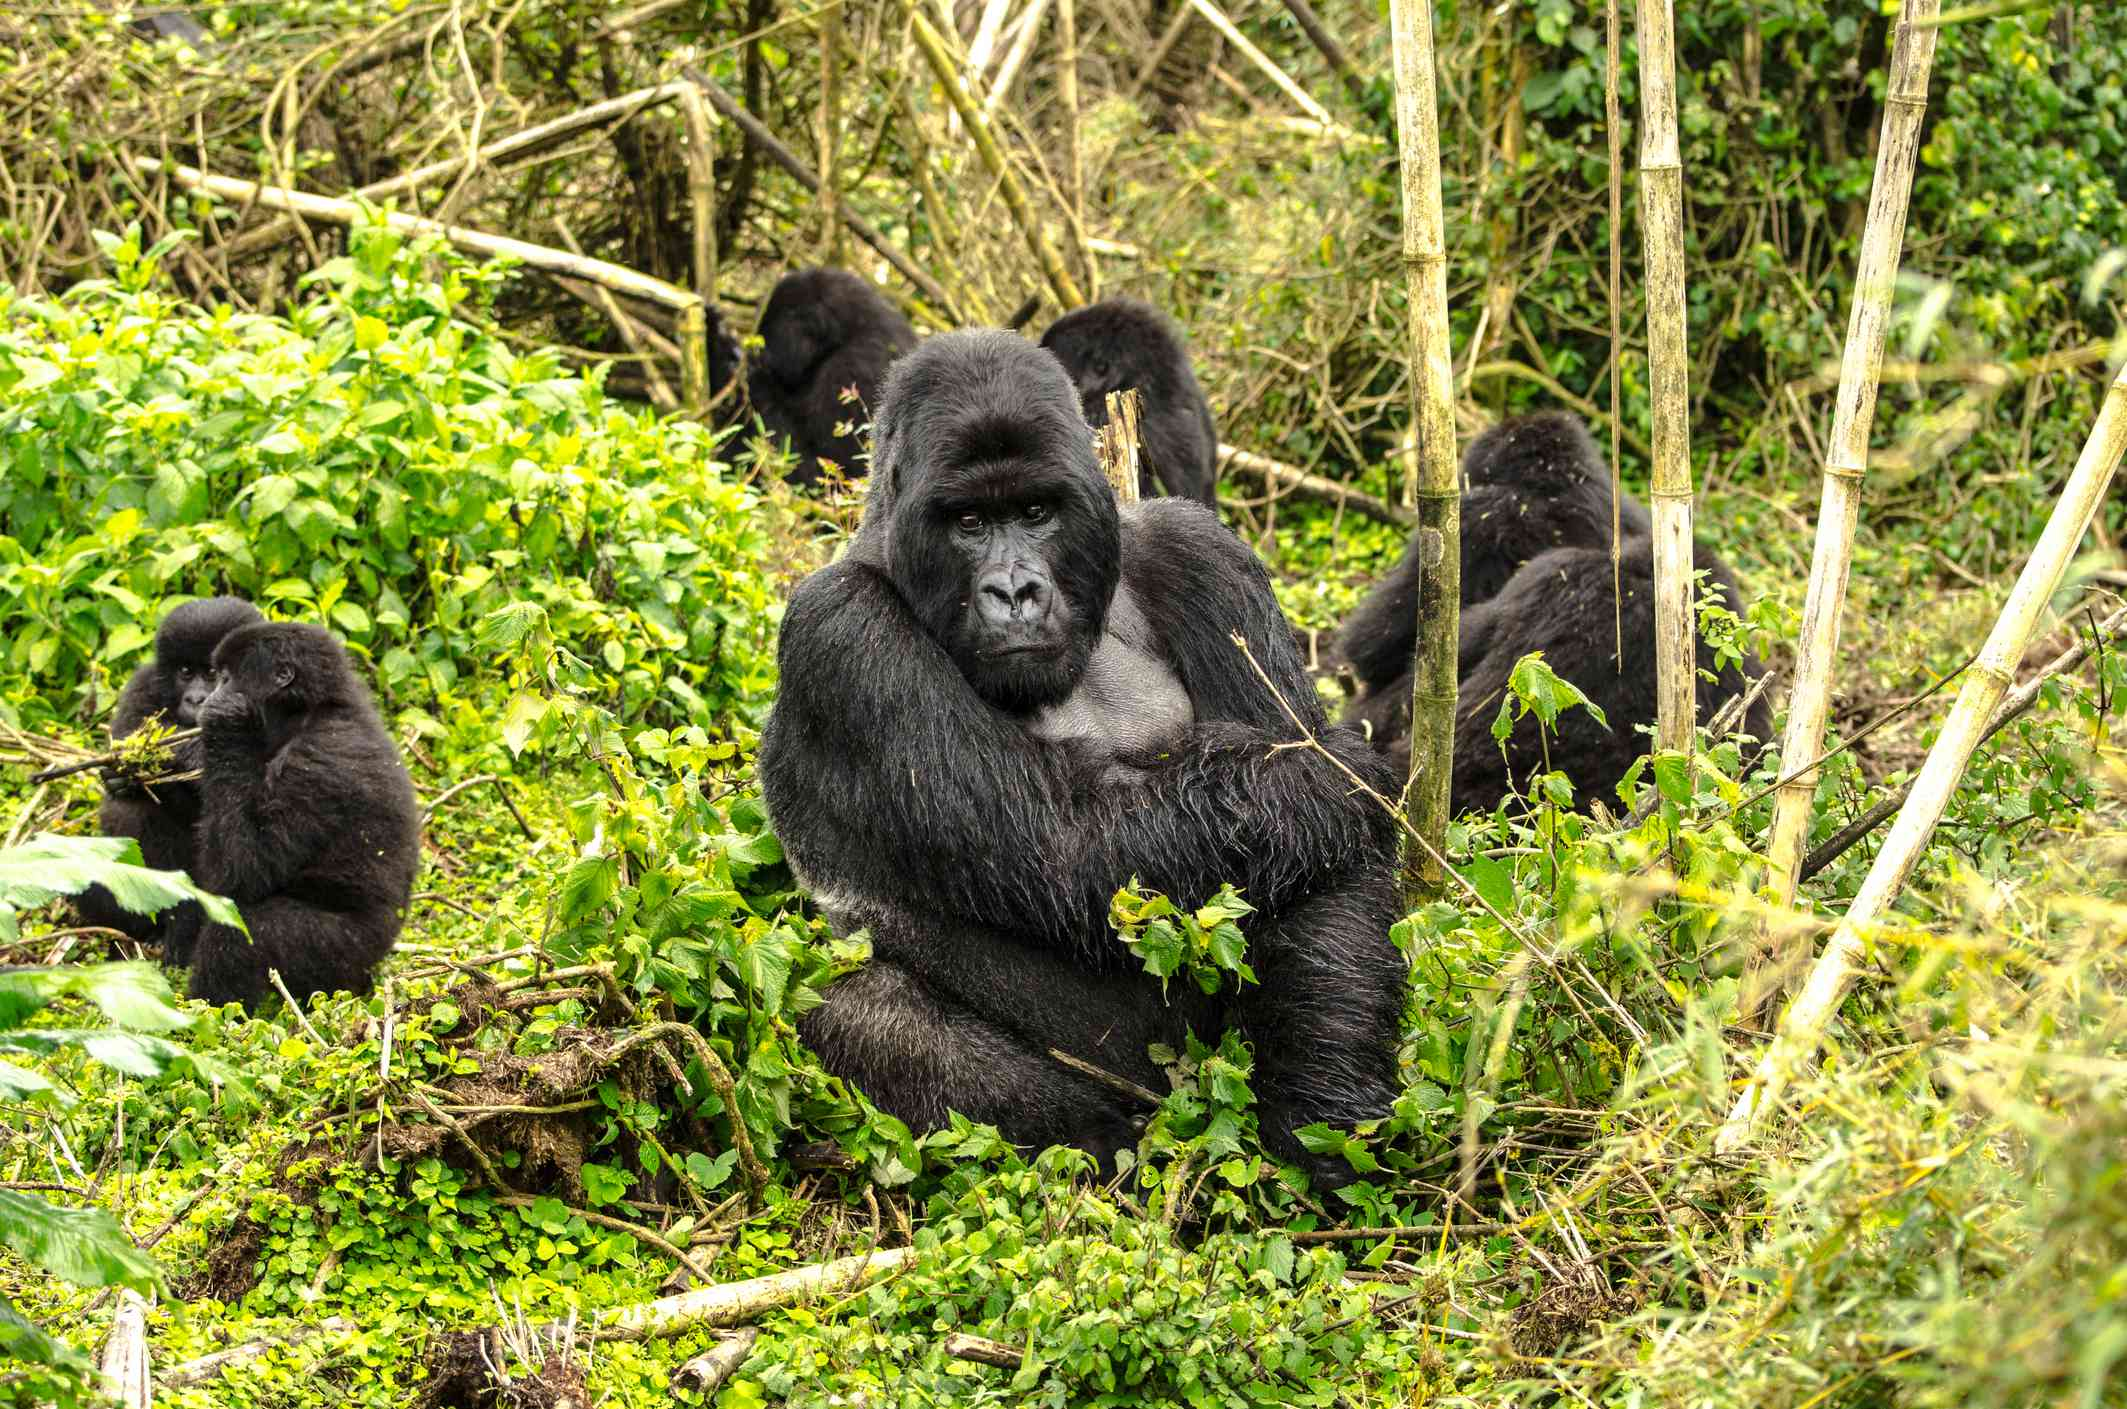 Silverback gorilla and family, Volcanoes National Park